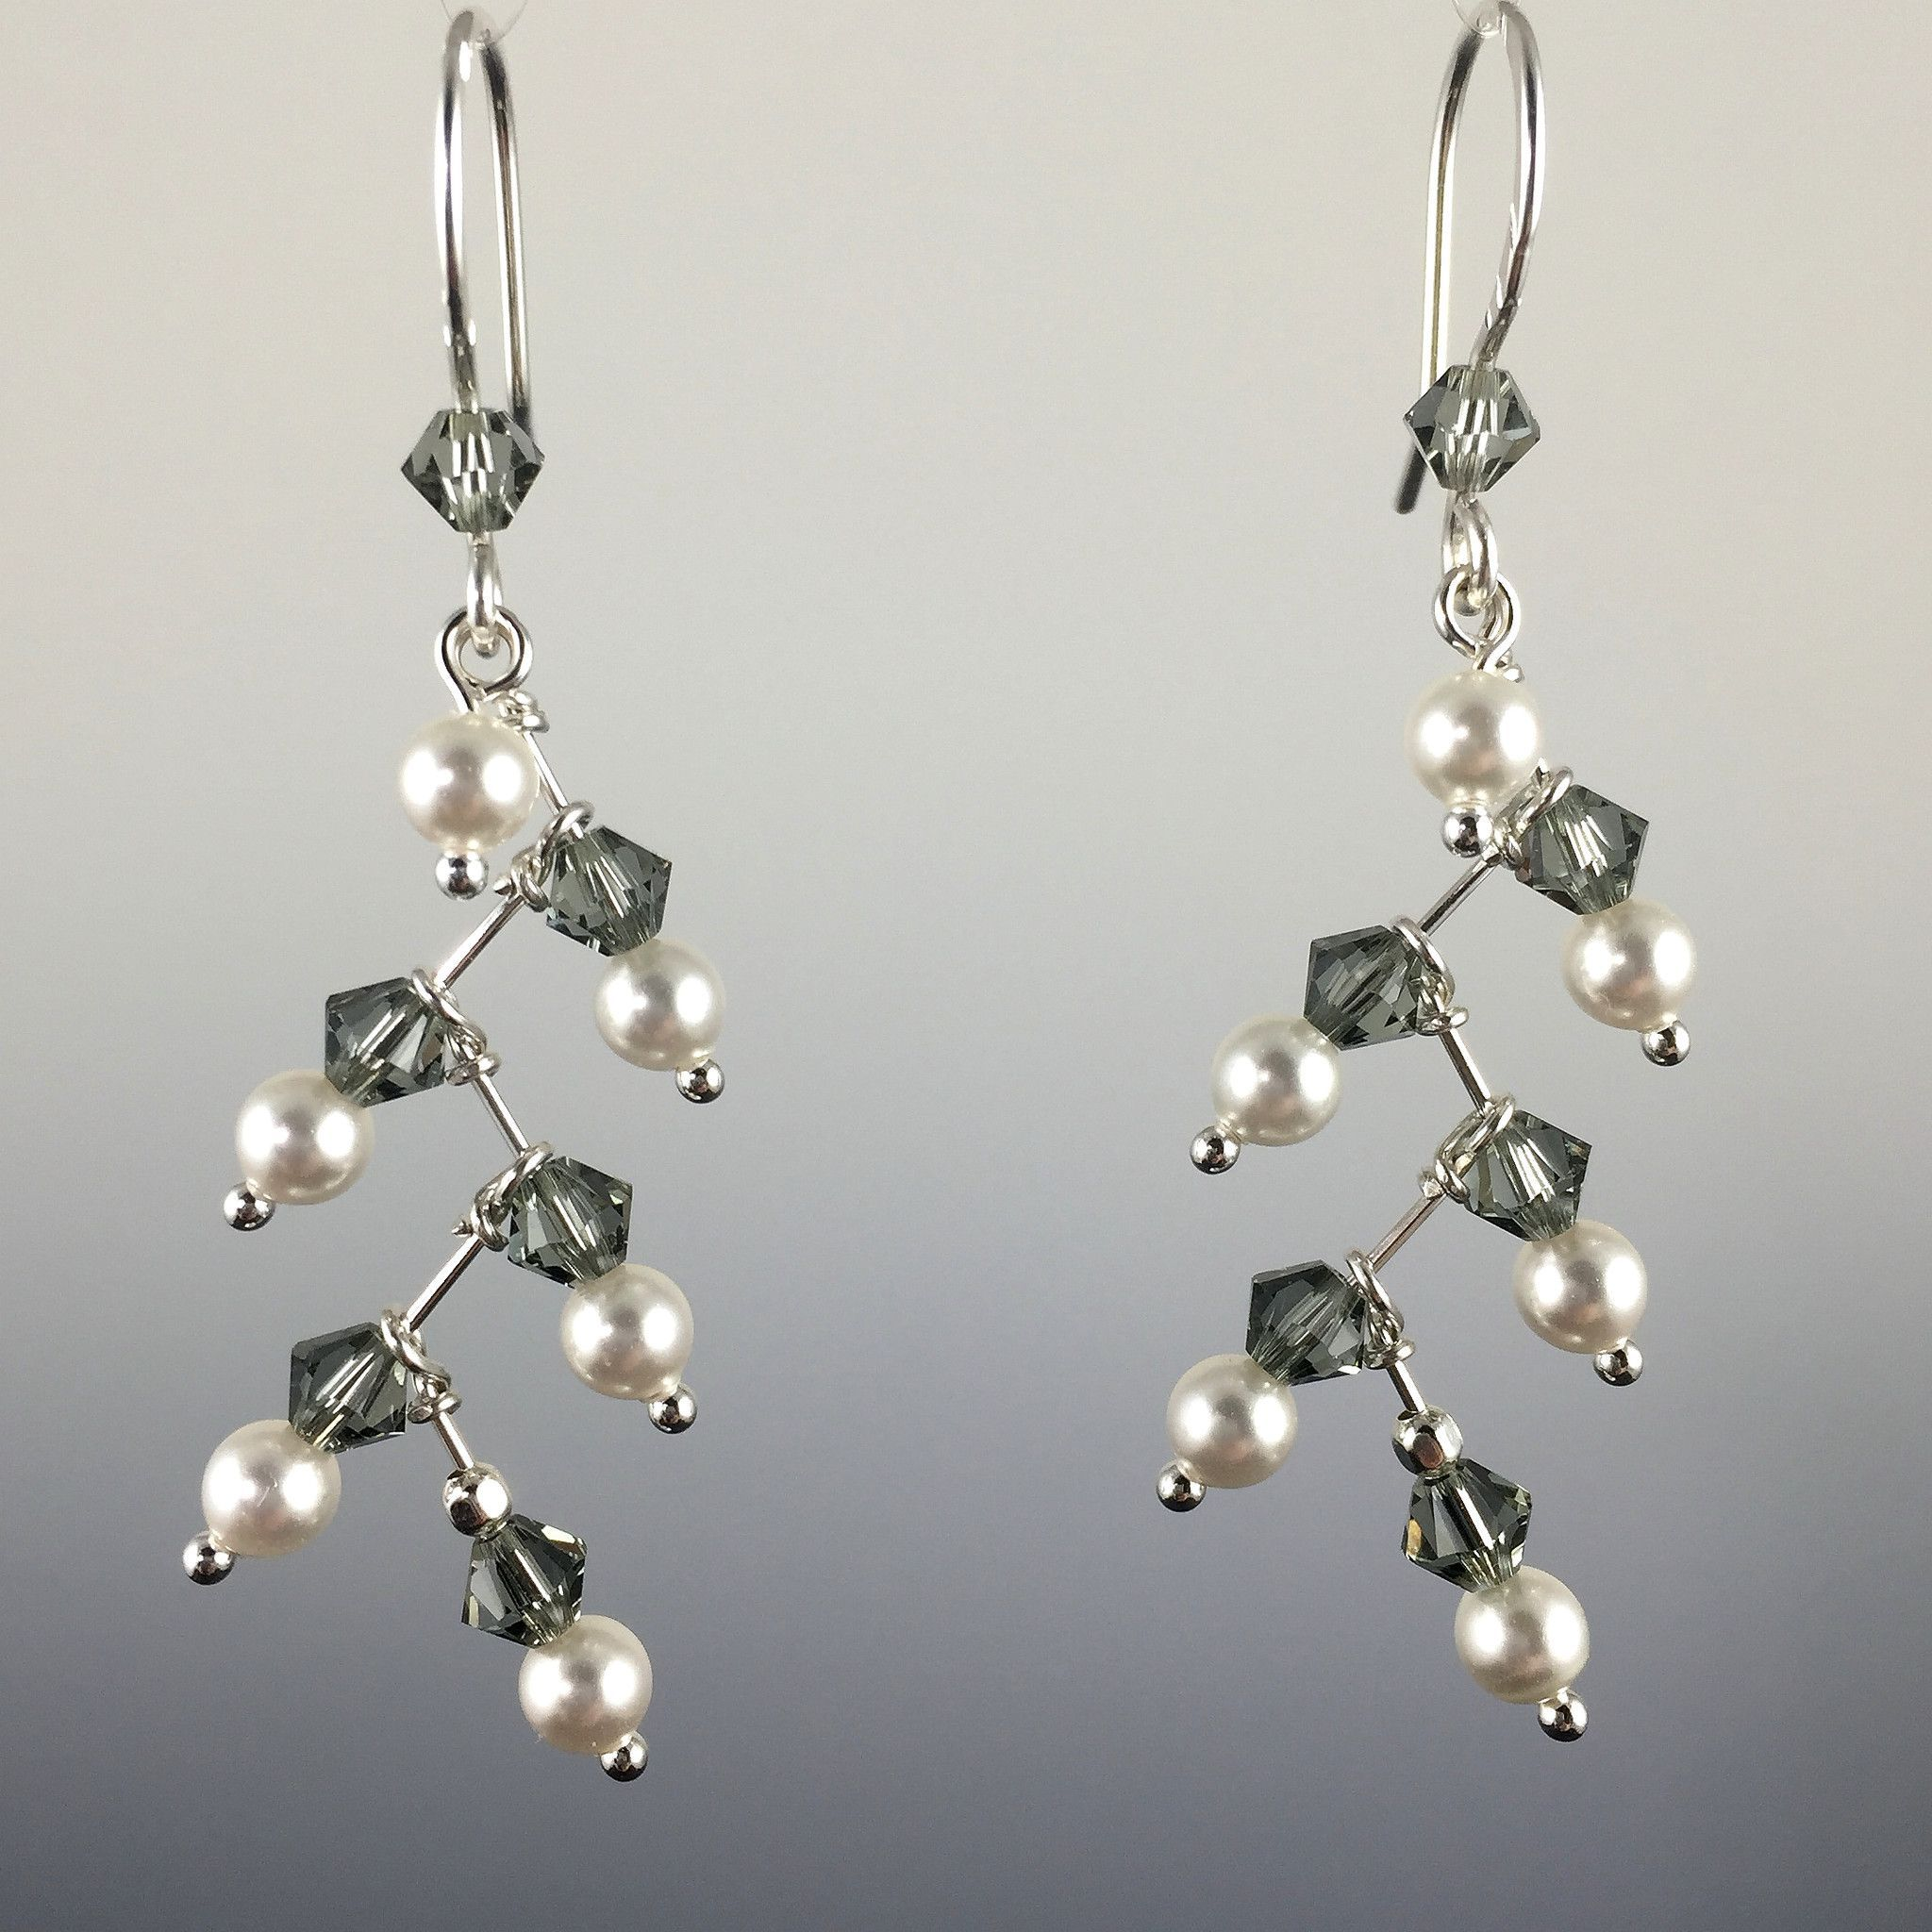 drop crystals aya azrielant pearl freshwater swarovski sterling silver with and earrings beads black itm crystal in pearls